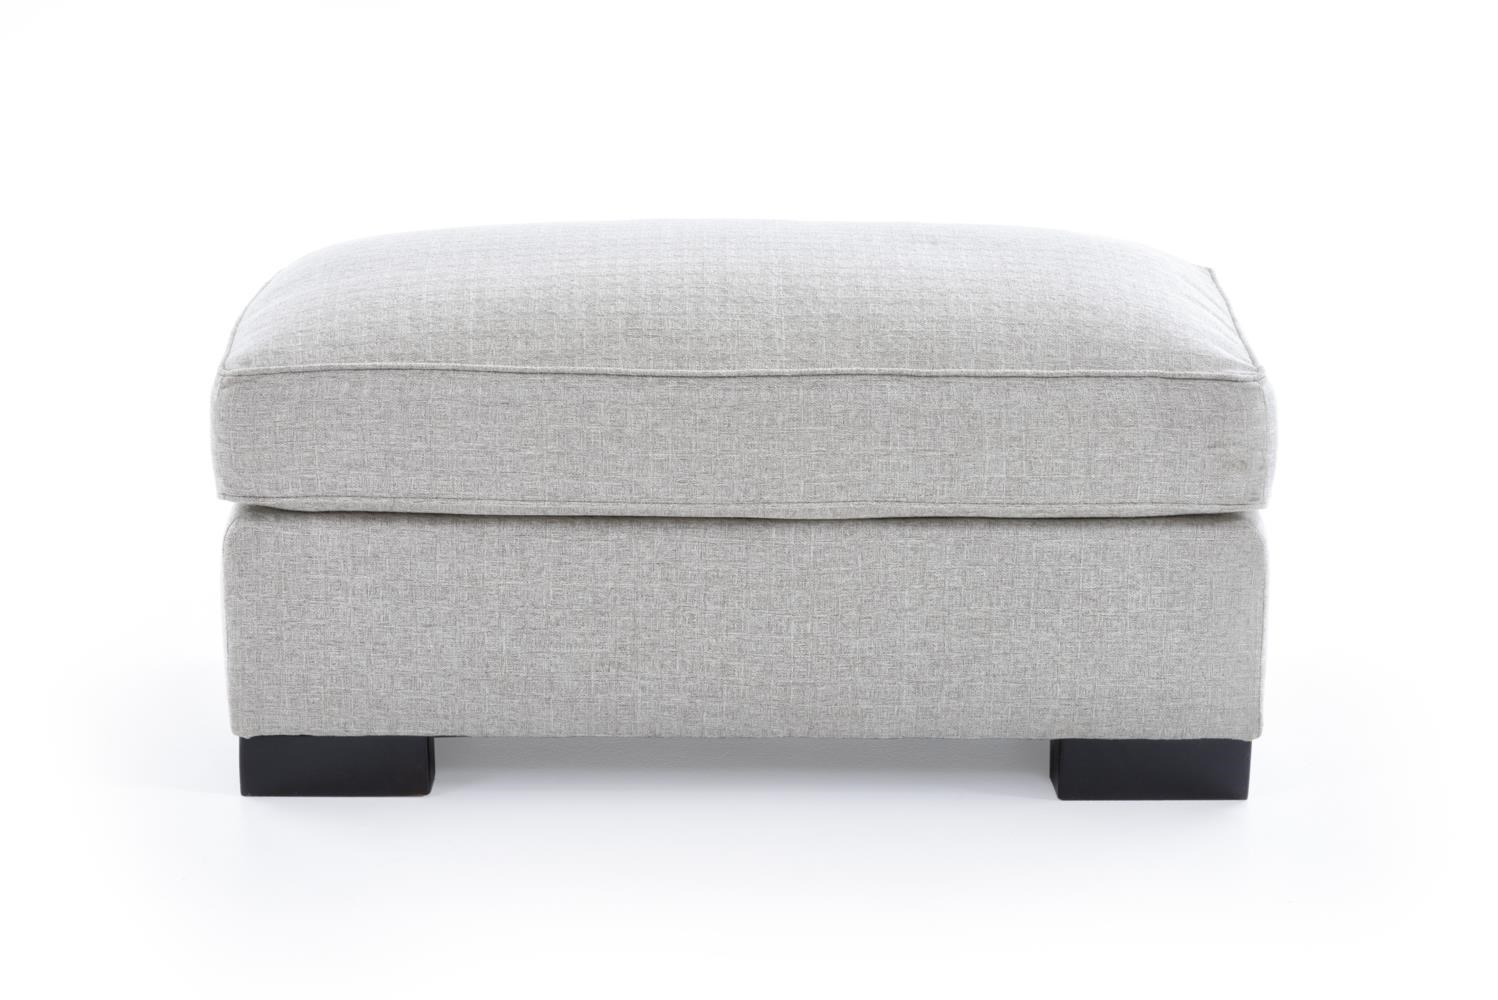 Broyhill Furniture Rocco Ottoman - Item Number: 4280-5 4697-92